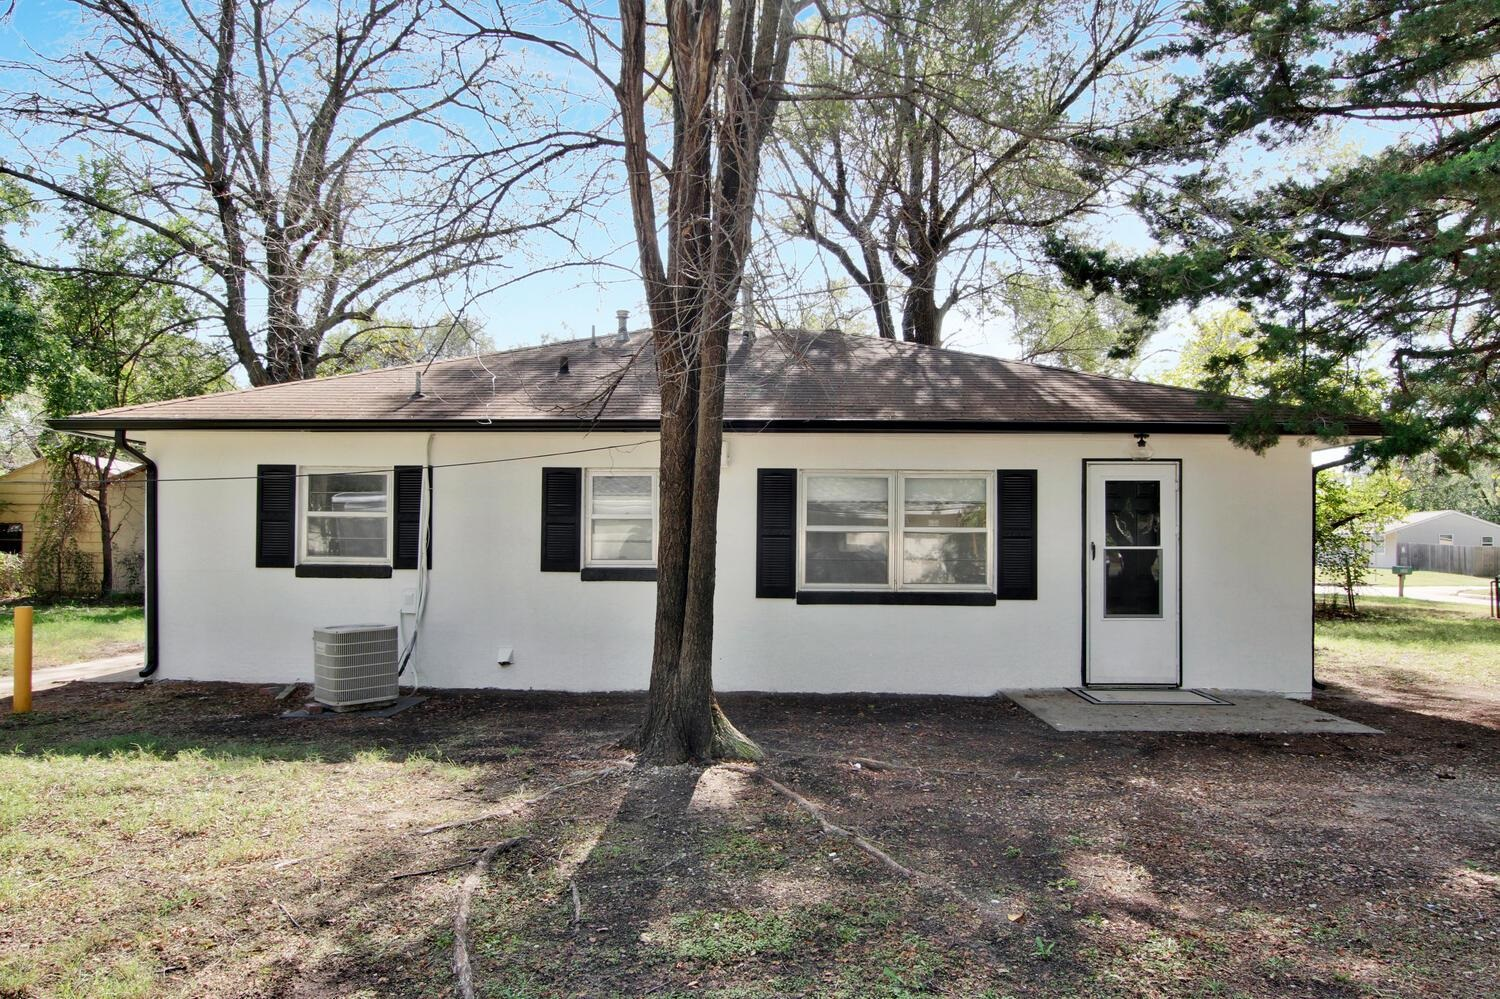 Recently updated 3 bed 1 bath cutie of a home! Sits right between three large mature trees for shade